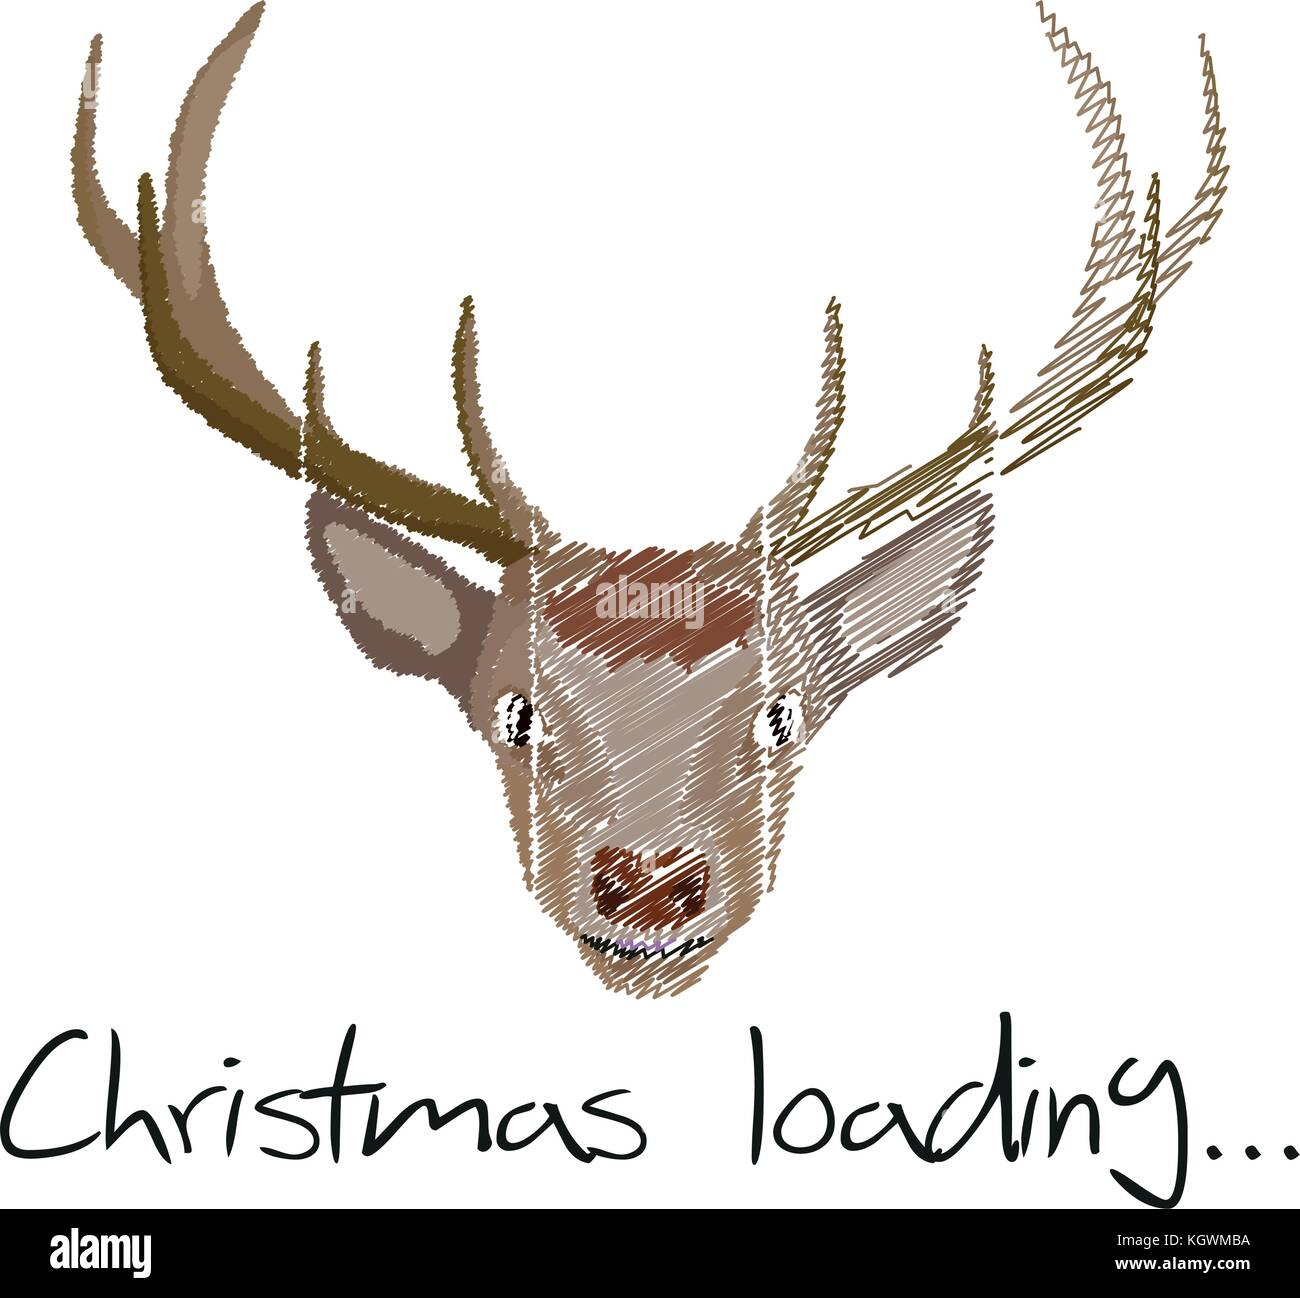 Illustration Christmas Loading Reindeer for the creative use in graphic design - Stock Vector